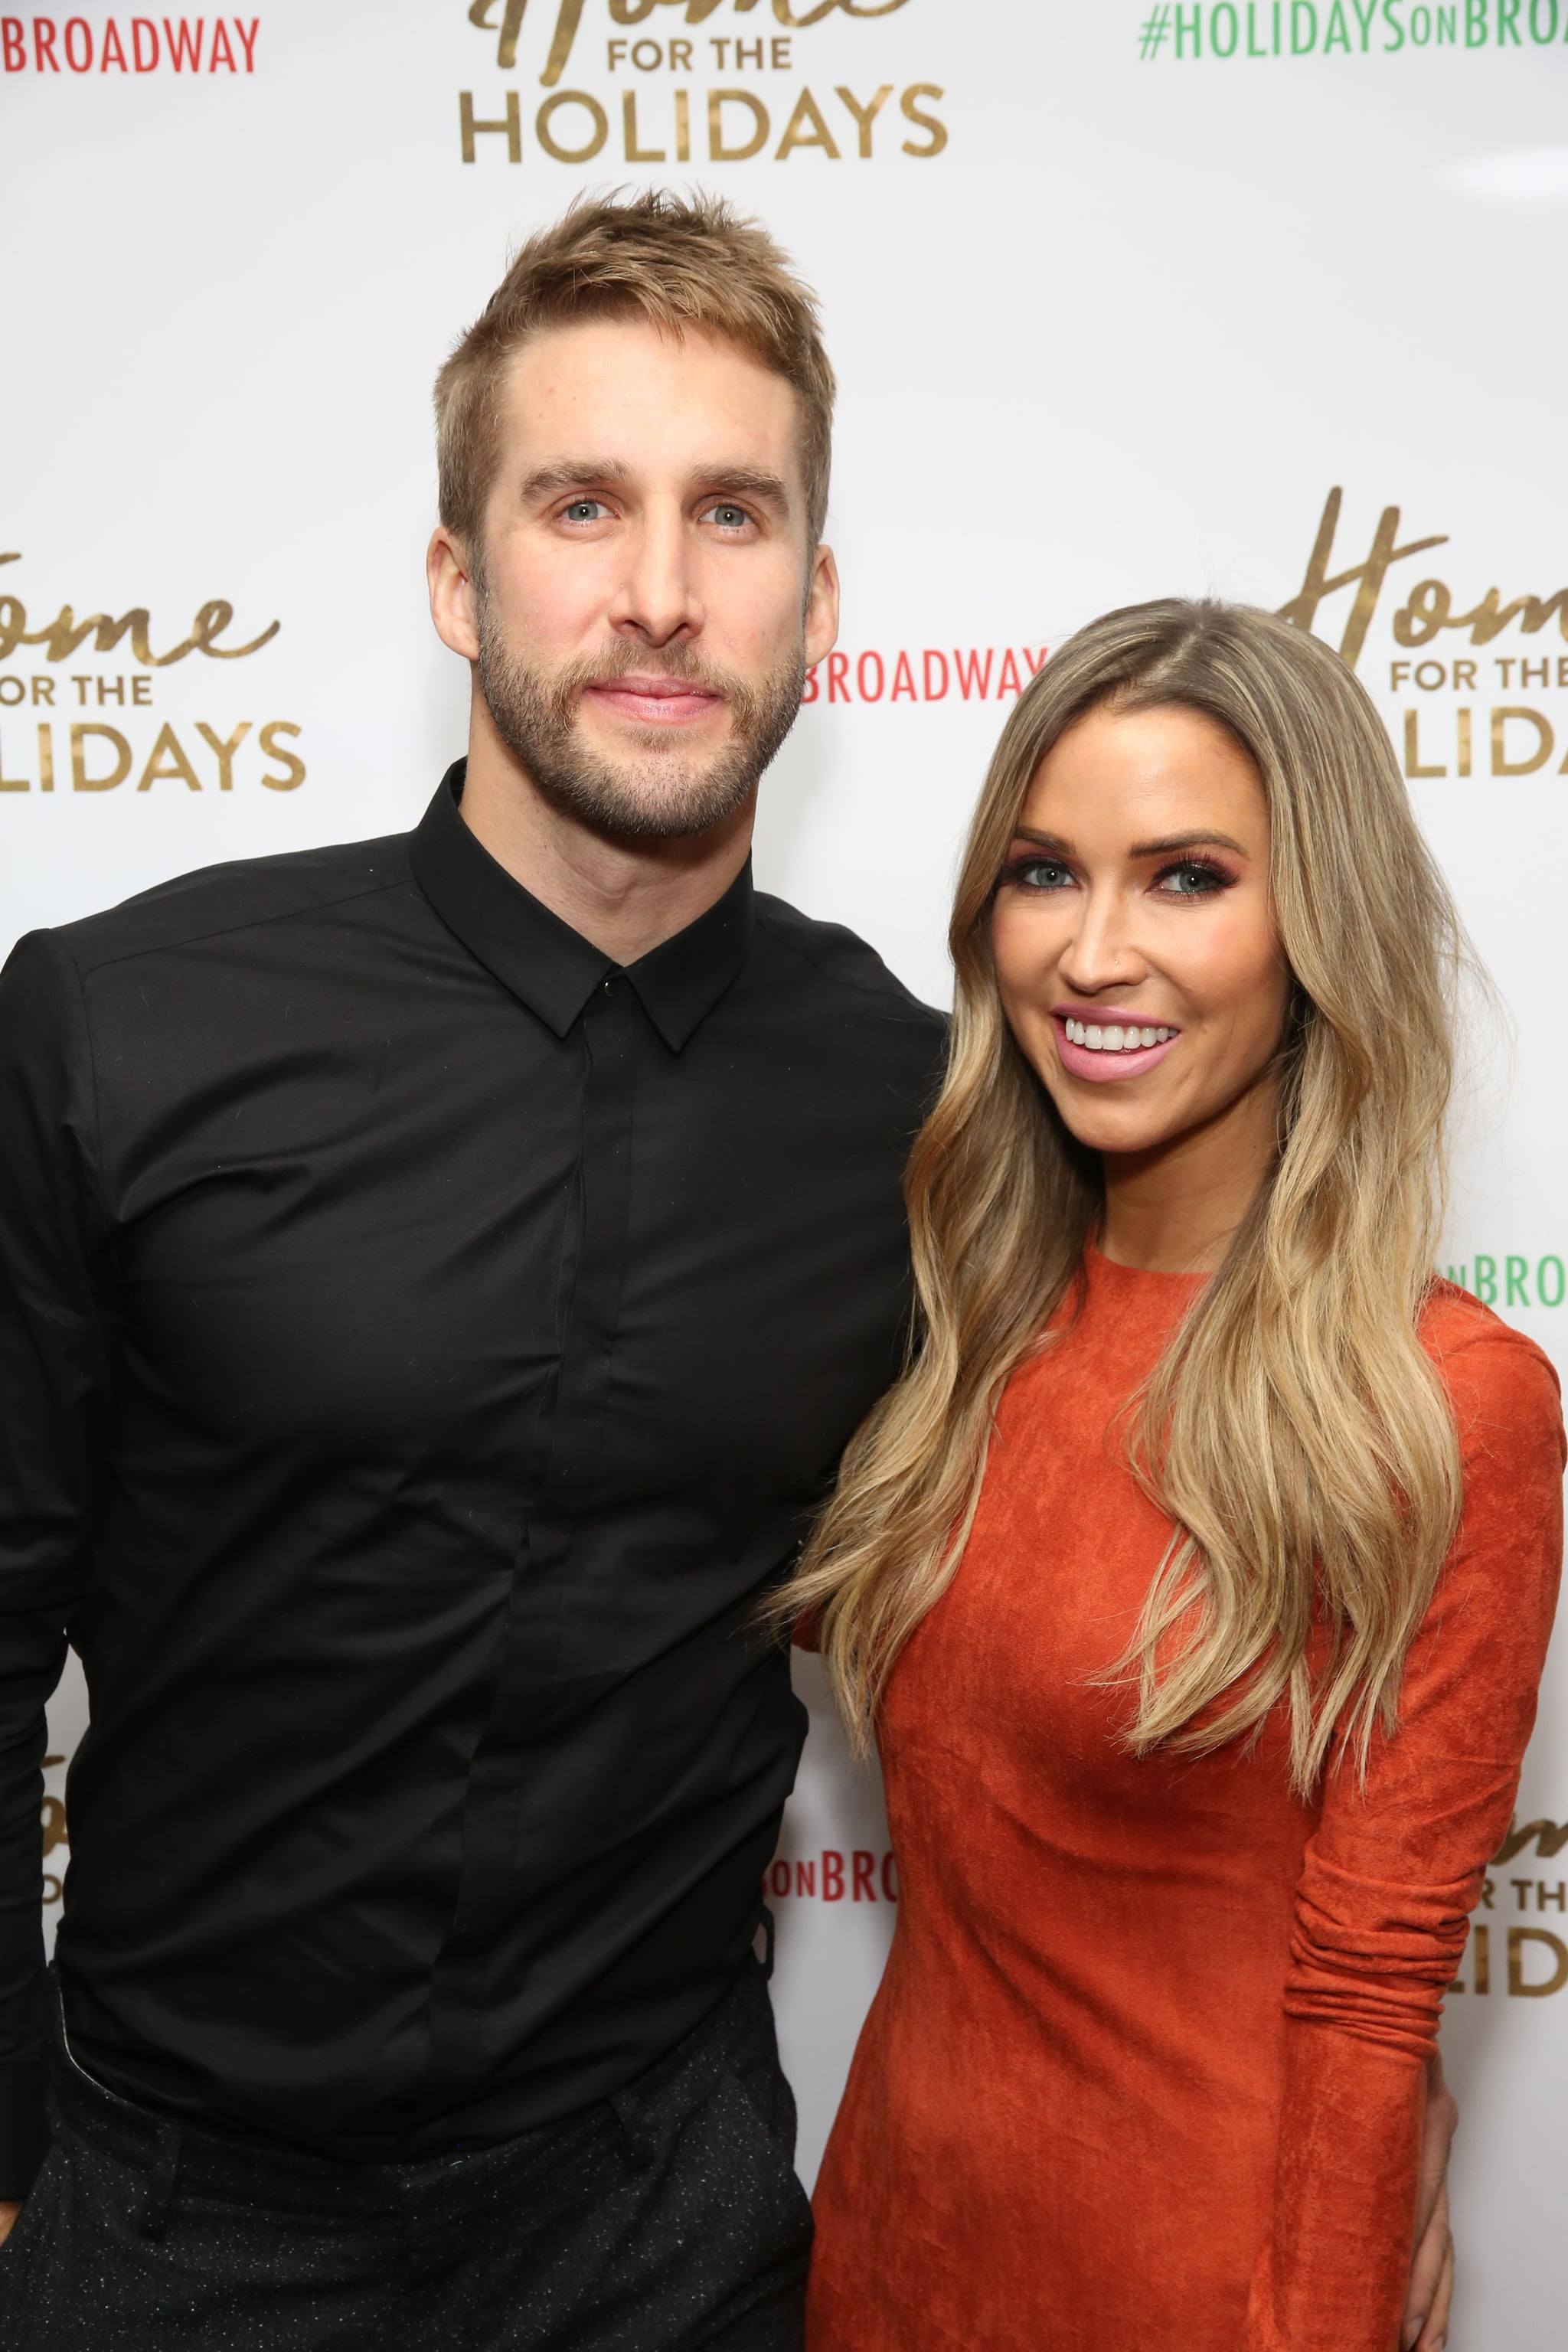 NEW YORK, NY - NOVEMBER 21:  Shawn Booth and Kaitlyn Bristowe attend the Broadway Opening Night after party for  'Home for the Holidays - The Broadway Concert Celebration' at the Copacabana in New York City.  (Photo by Walter McBride/Getty Images)